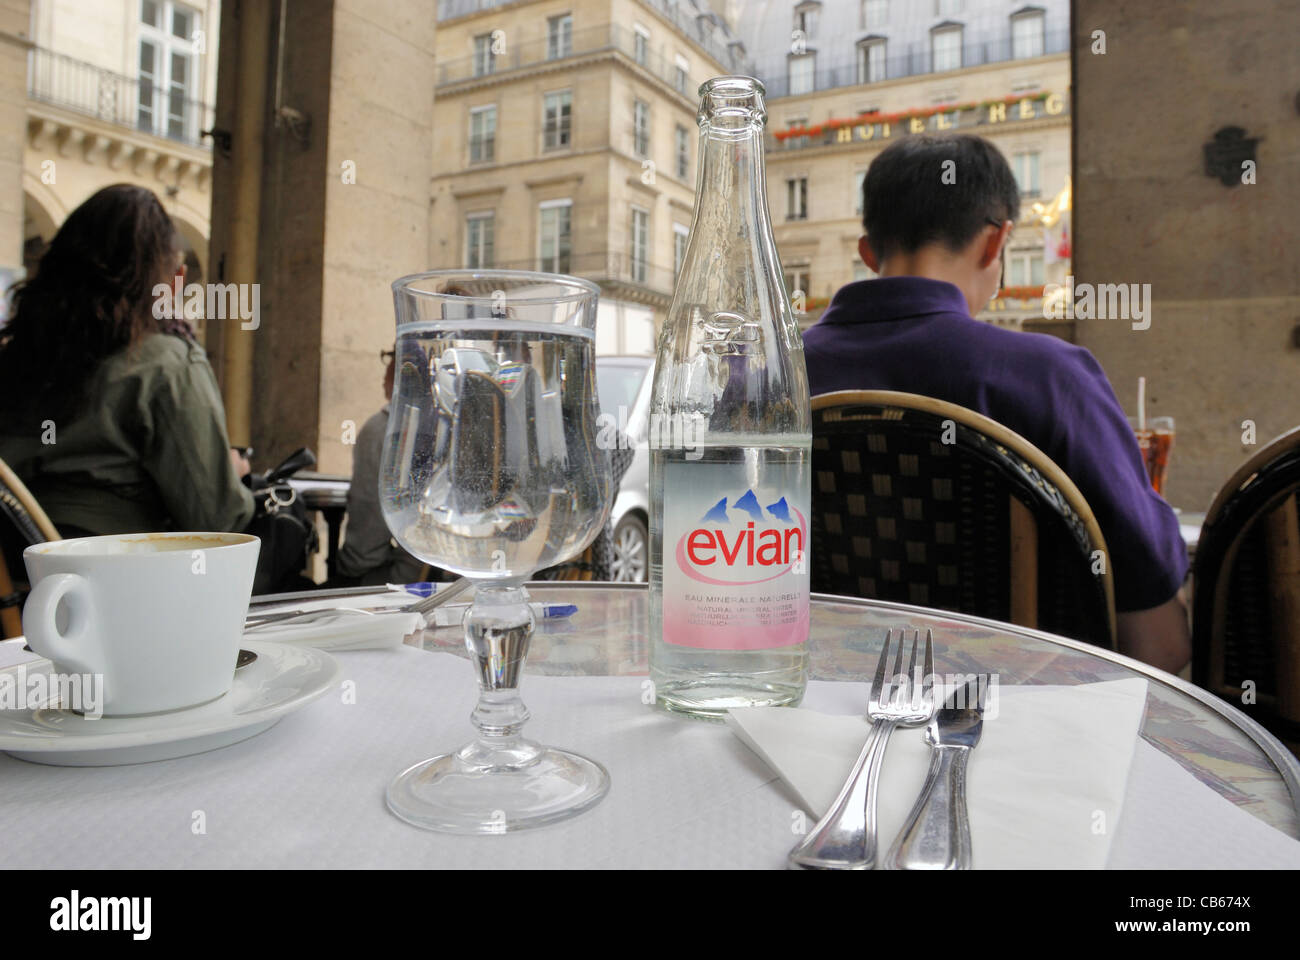 Evian bottled water sitting on a restaurant table in Paris, France. - Stock Image